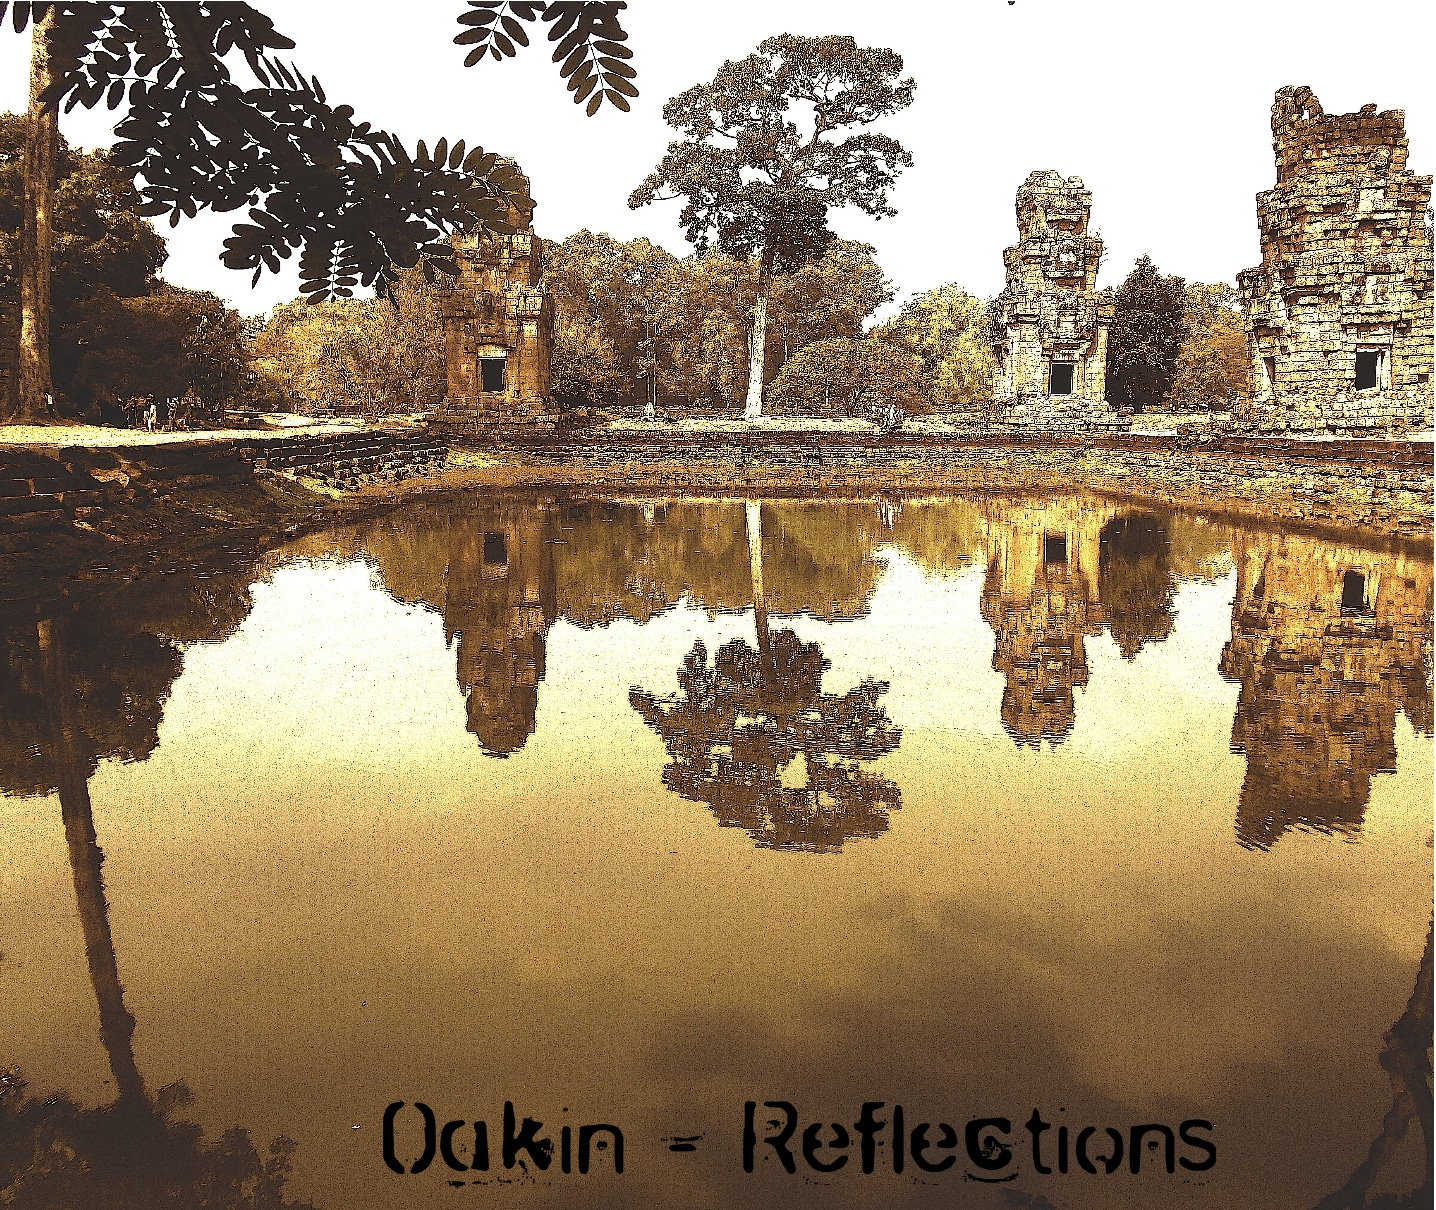 oakin_reflections